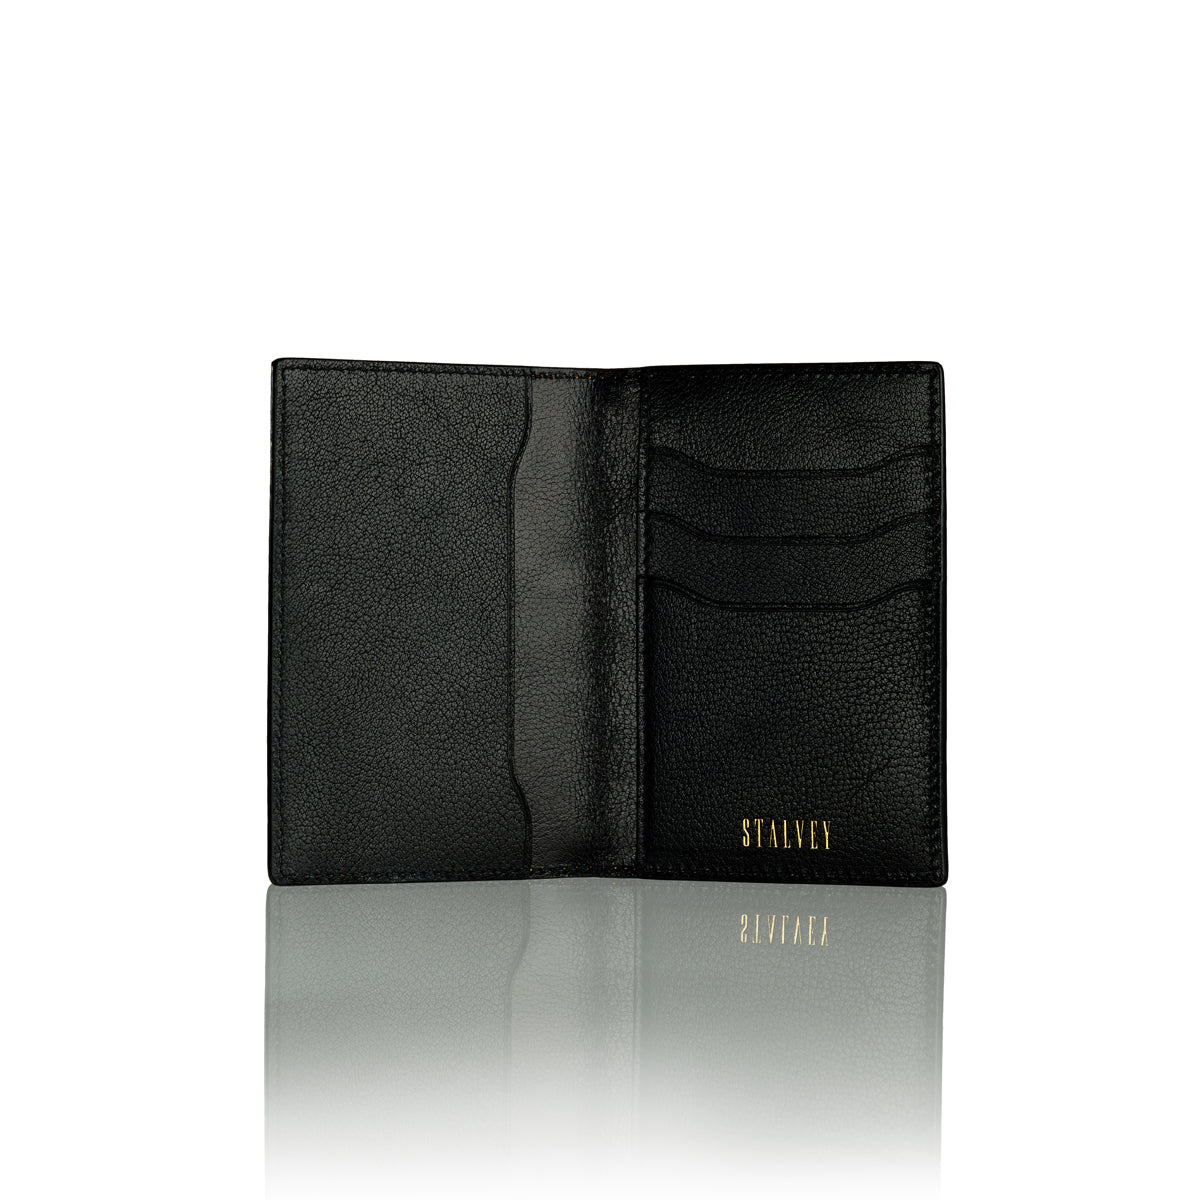 Vertical Bi-Fold Wallet - Shiny Black Alligator